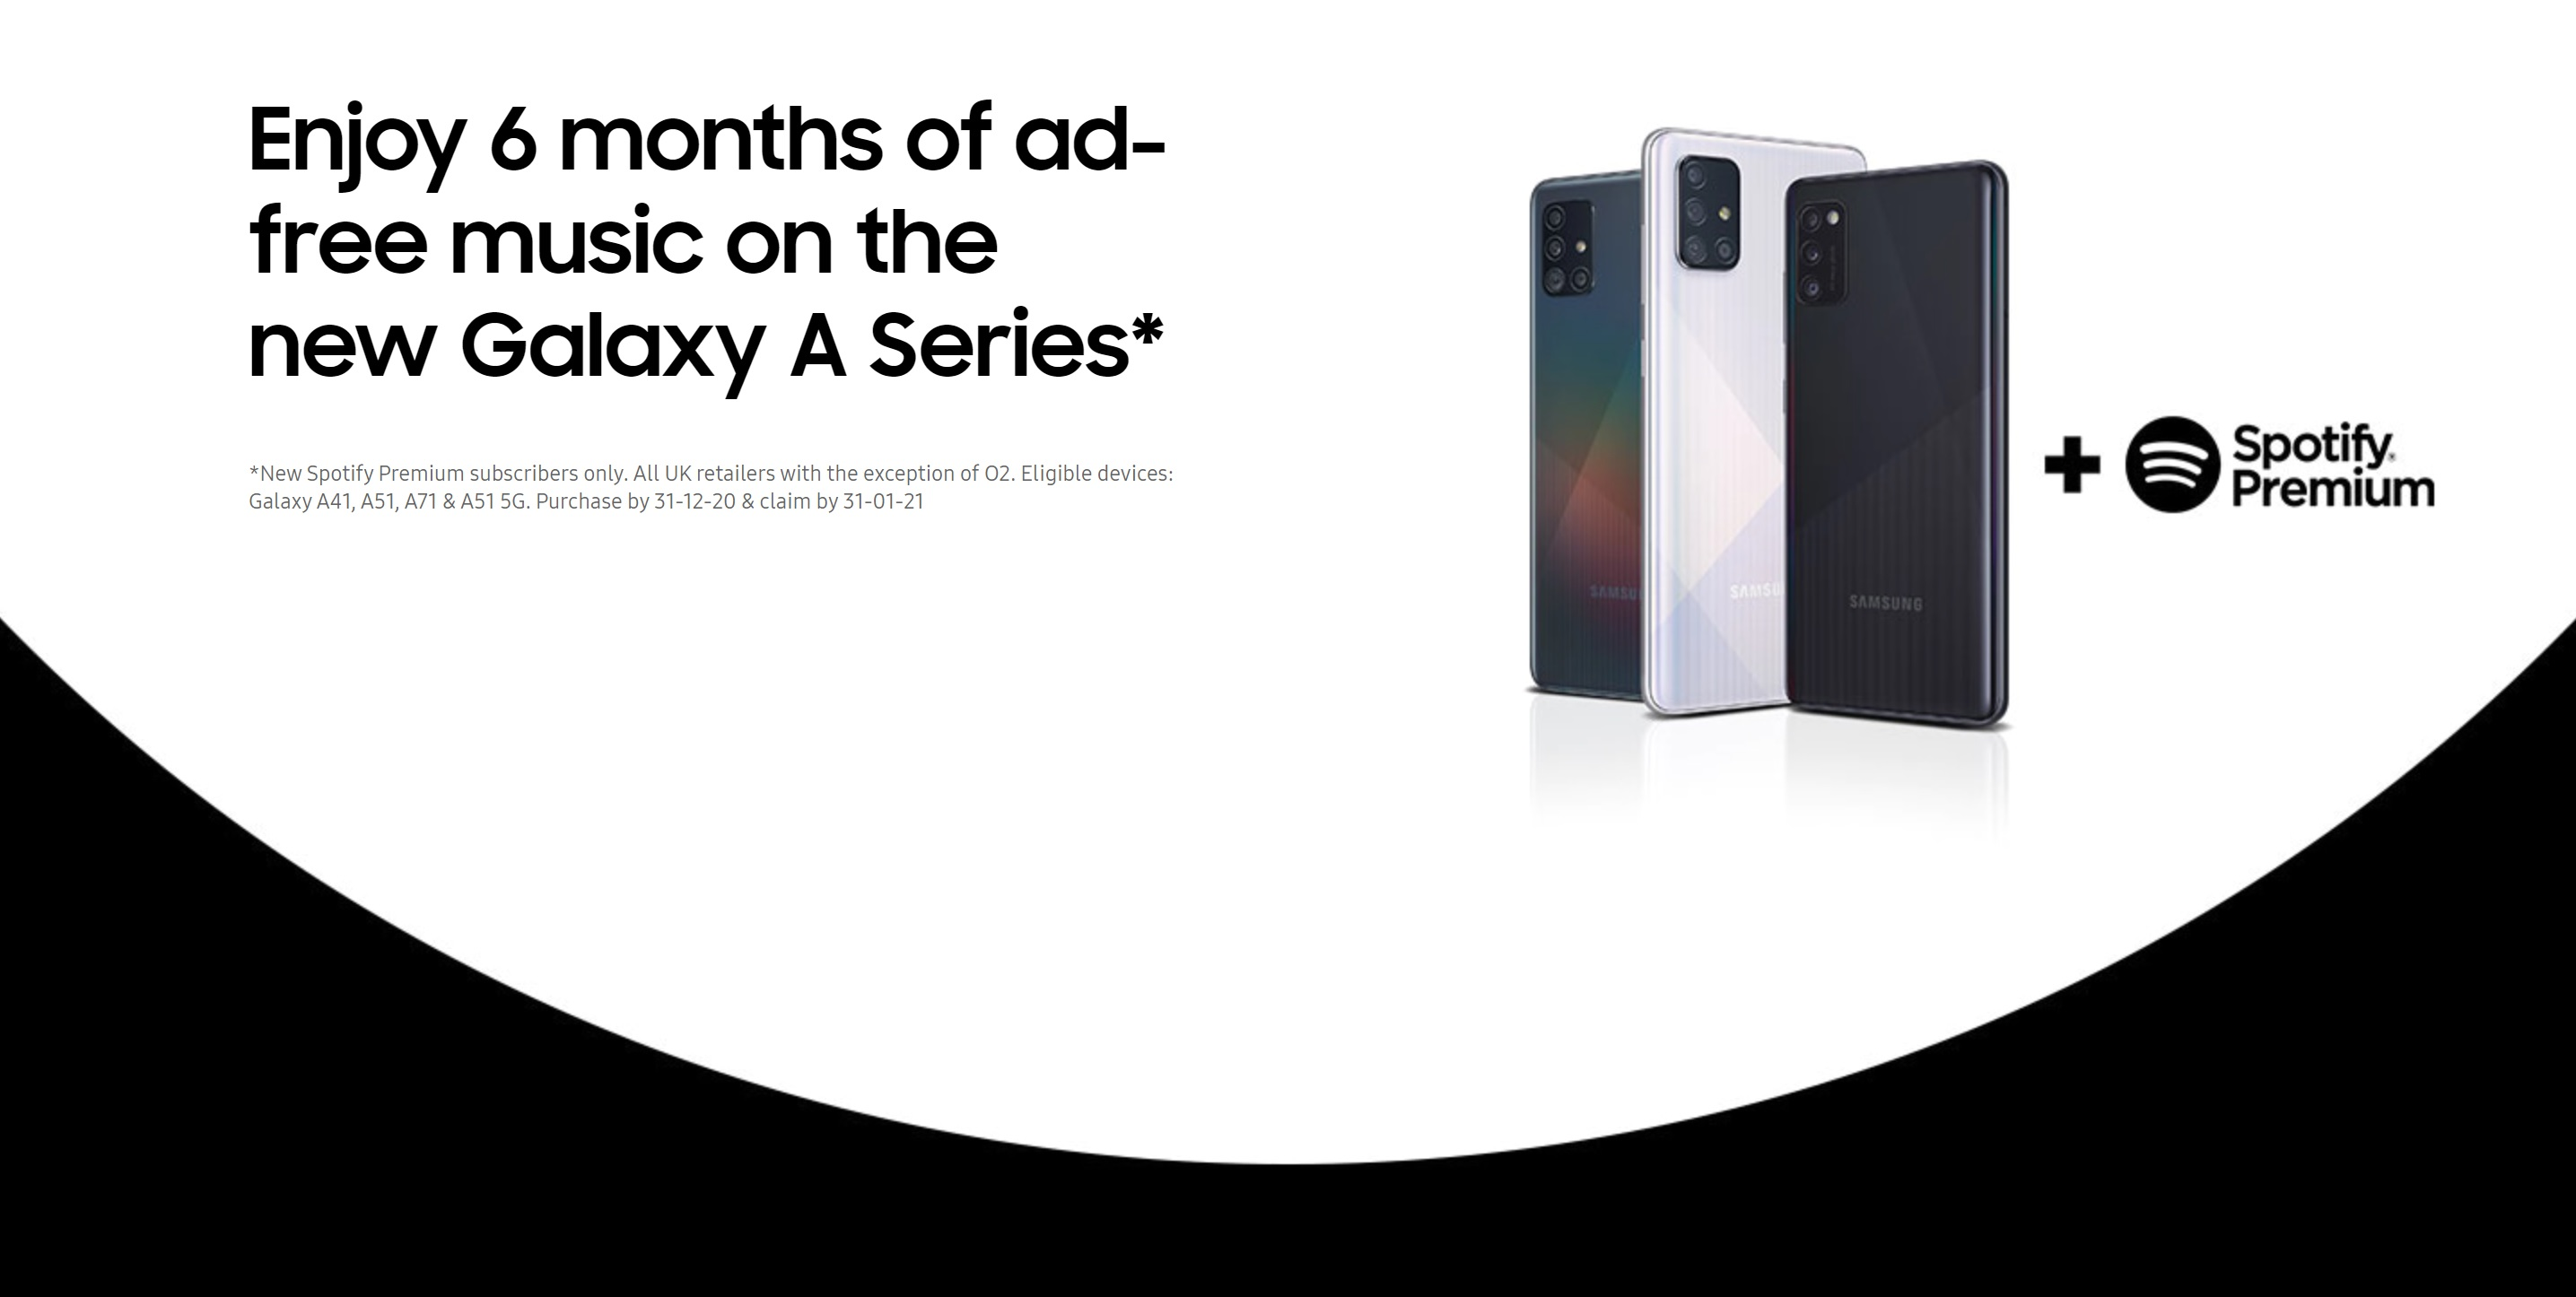 Samsung Galaxy A41, A51 and A71 with 6 months Free Spotify Premium